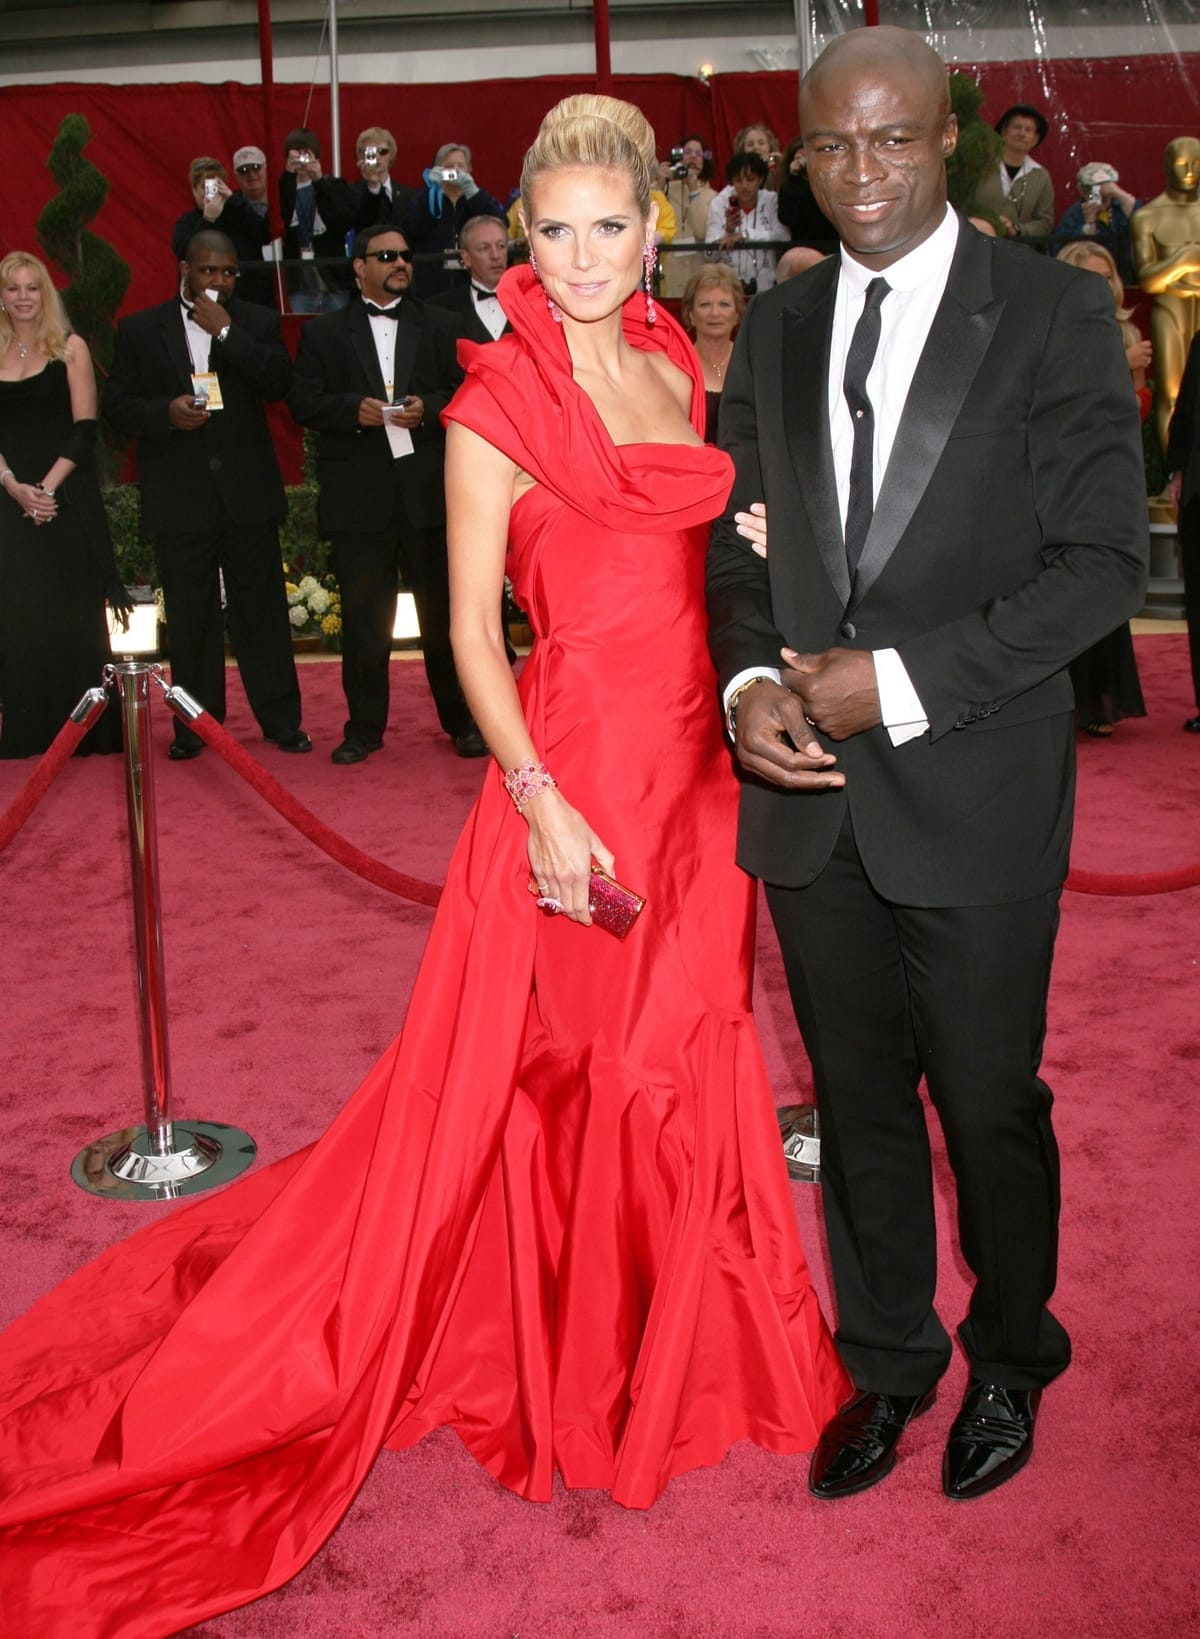 Singer Seal and TV personality Heidi Klum arrive at the 81st Annual Academy Awards